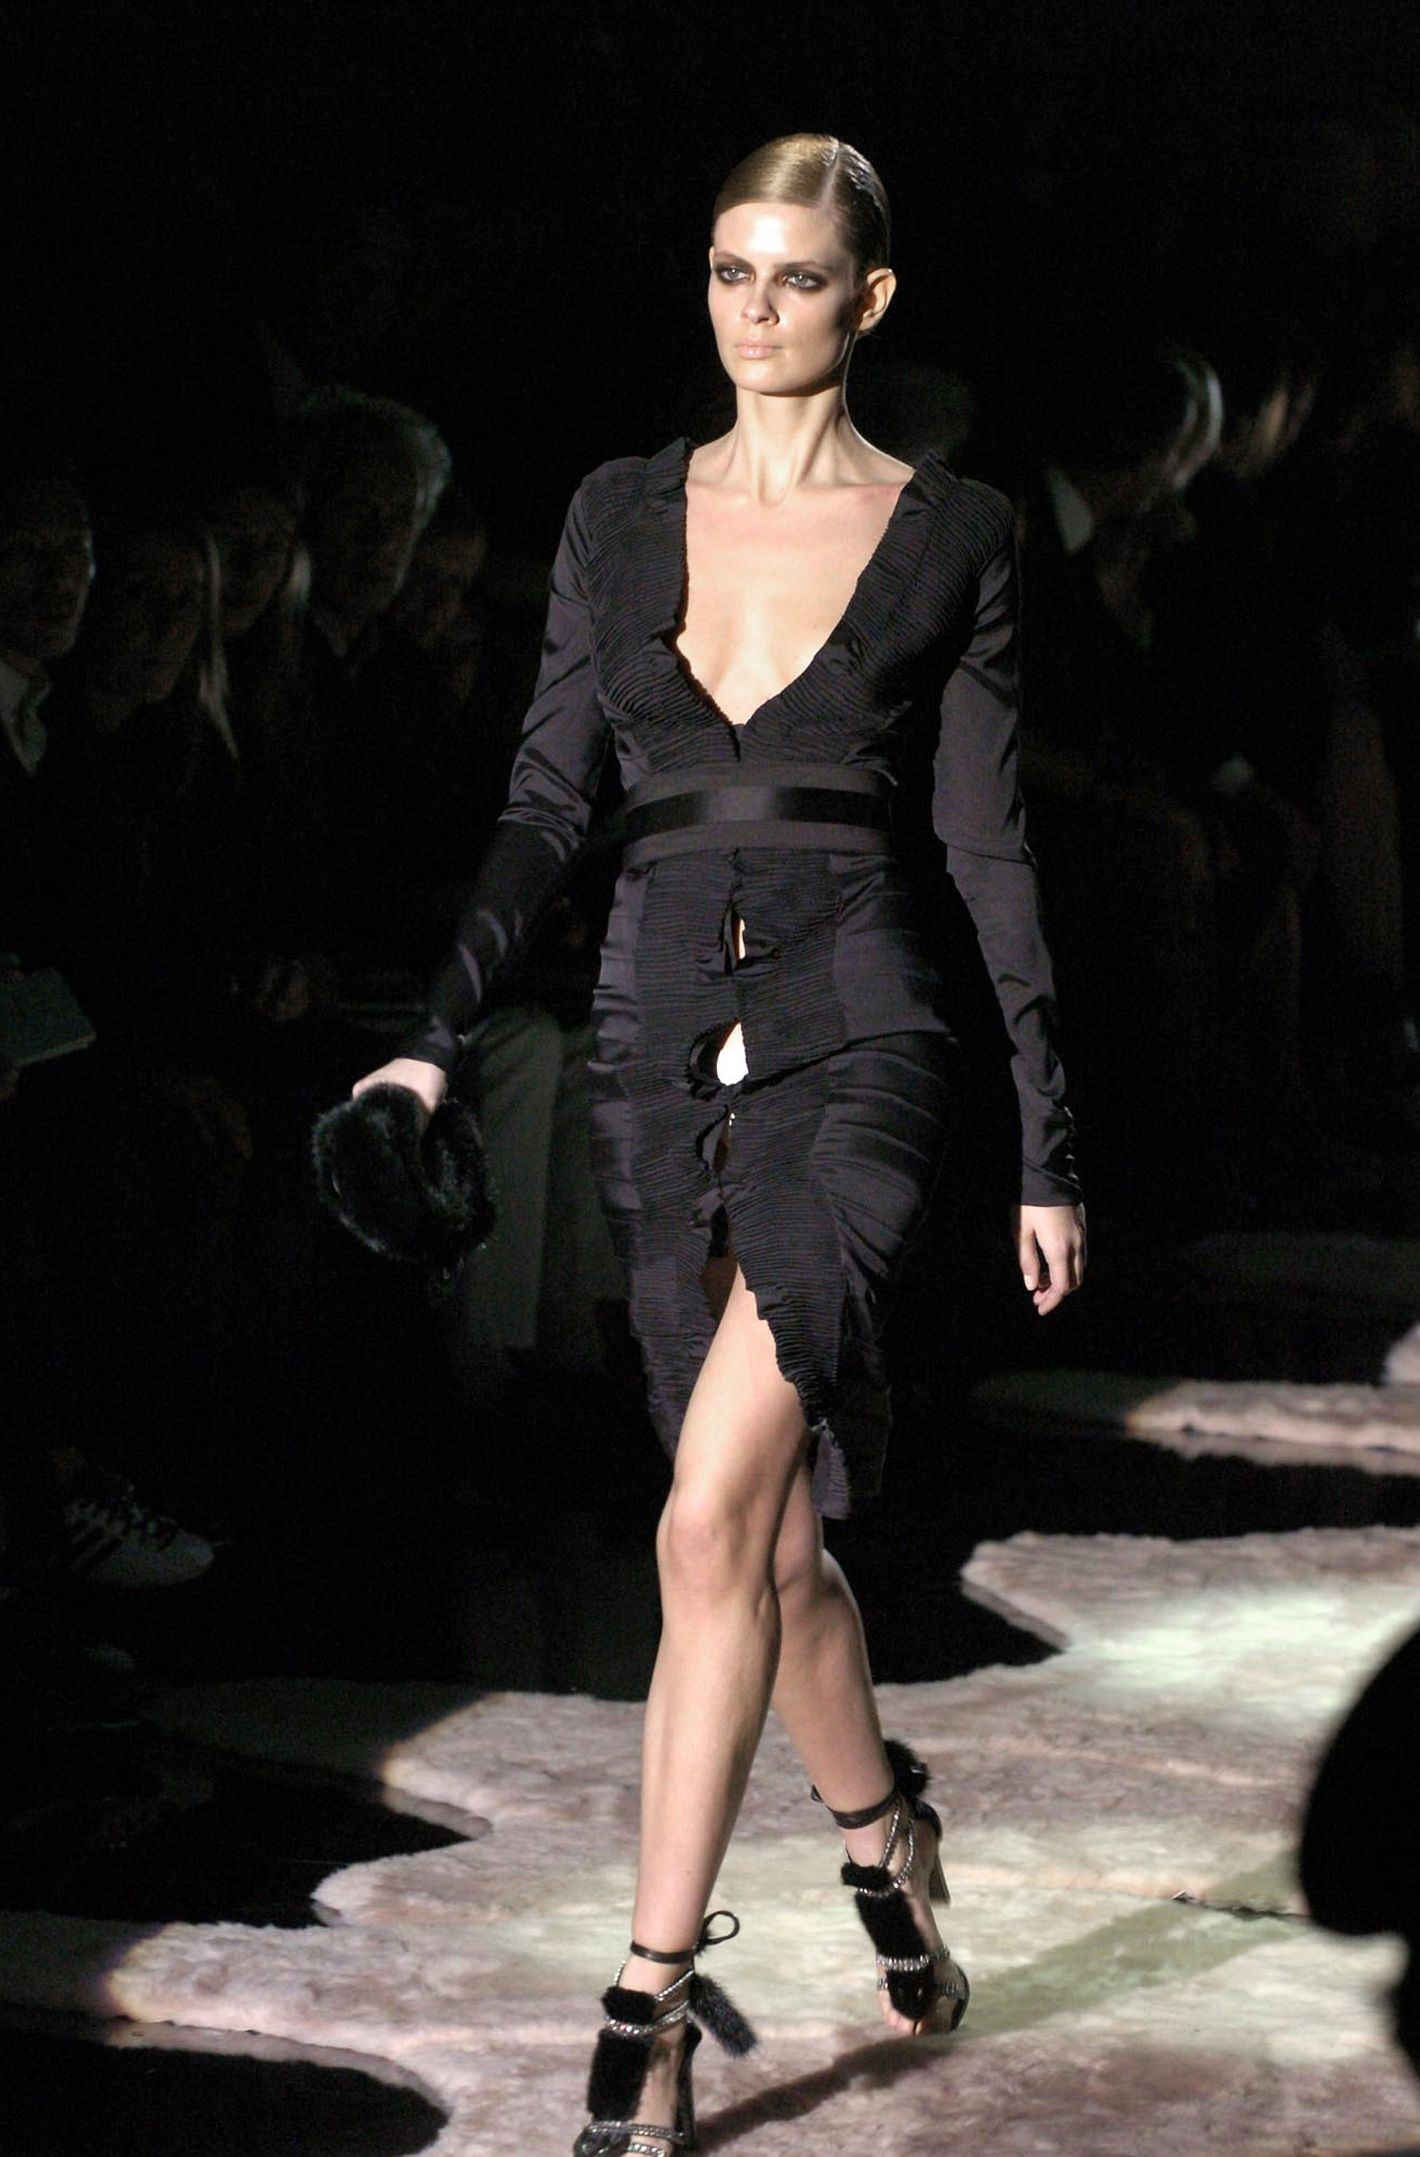 ece3befb5 Tom Ford s Last Show for Gucci Was a Rose-Petal-Strewn Dream